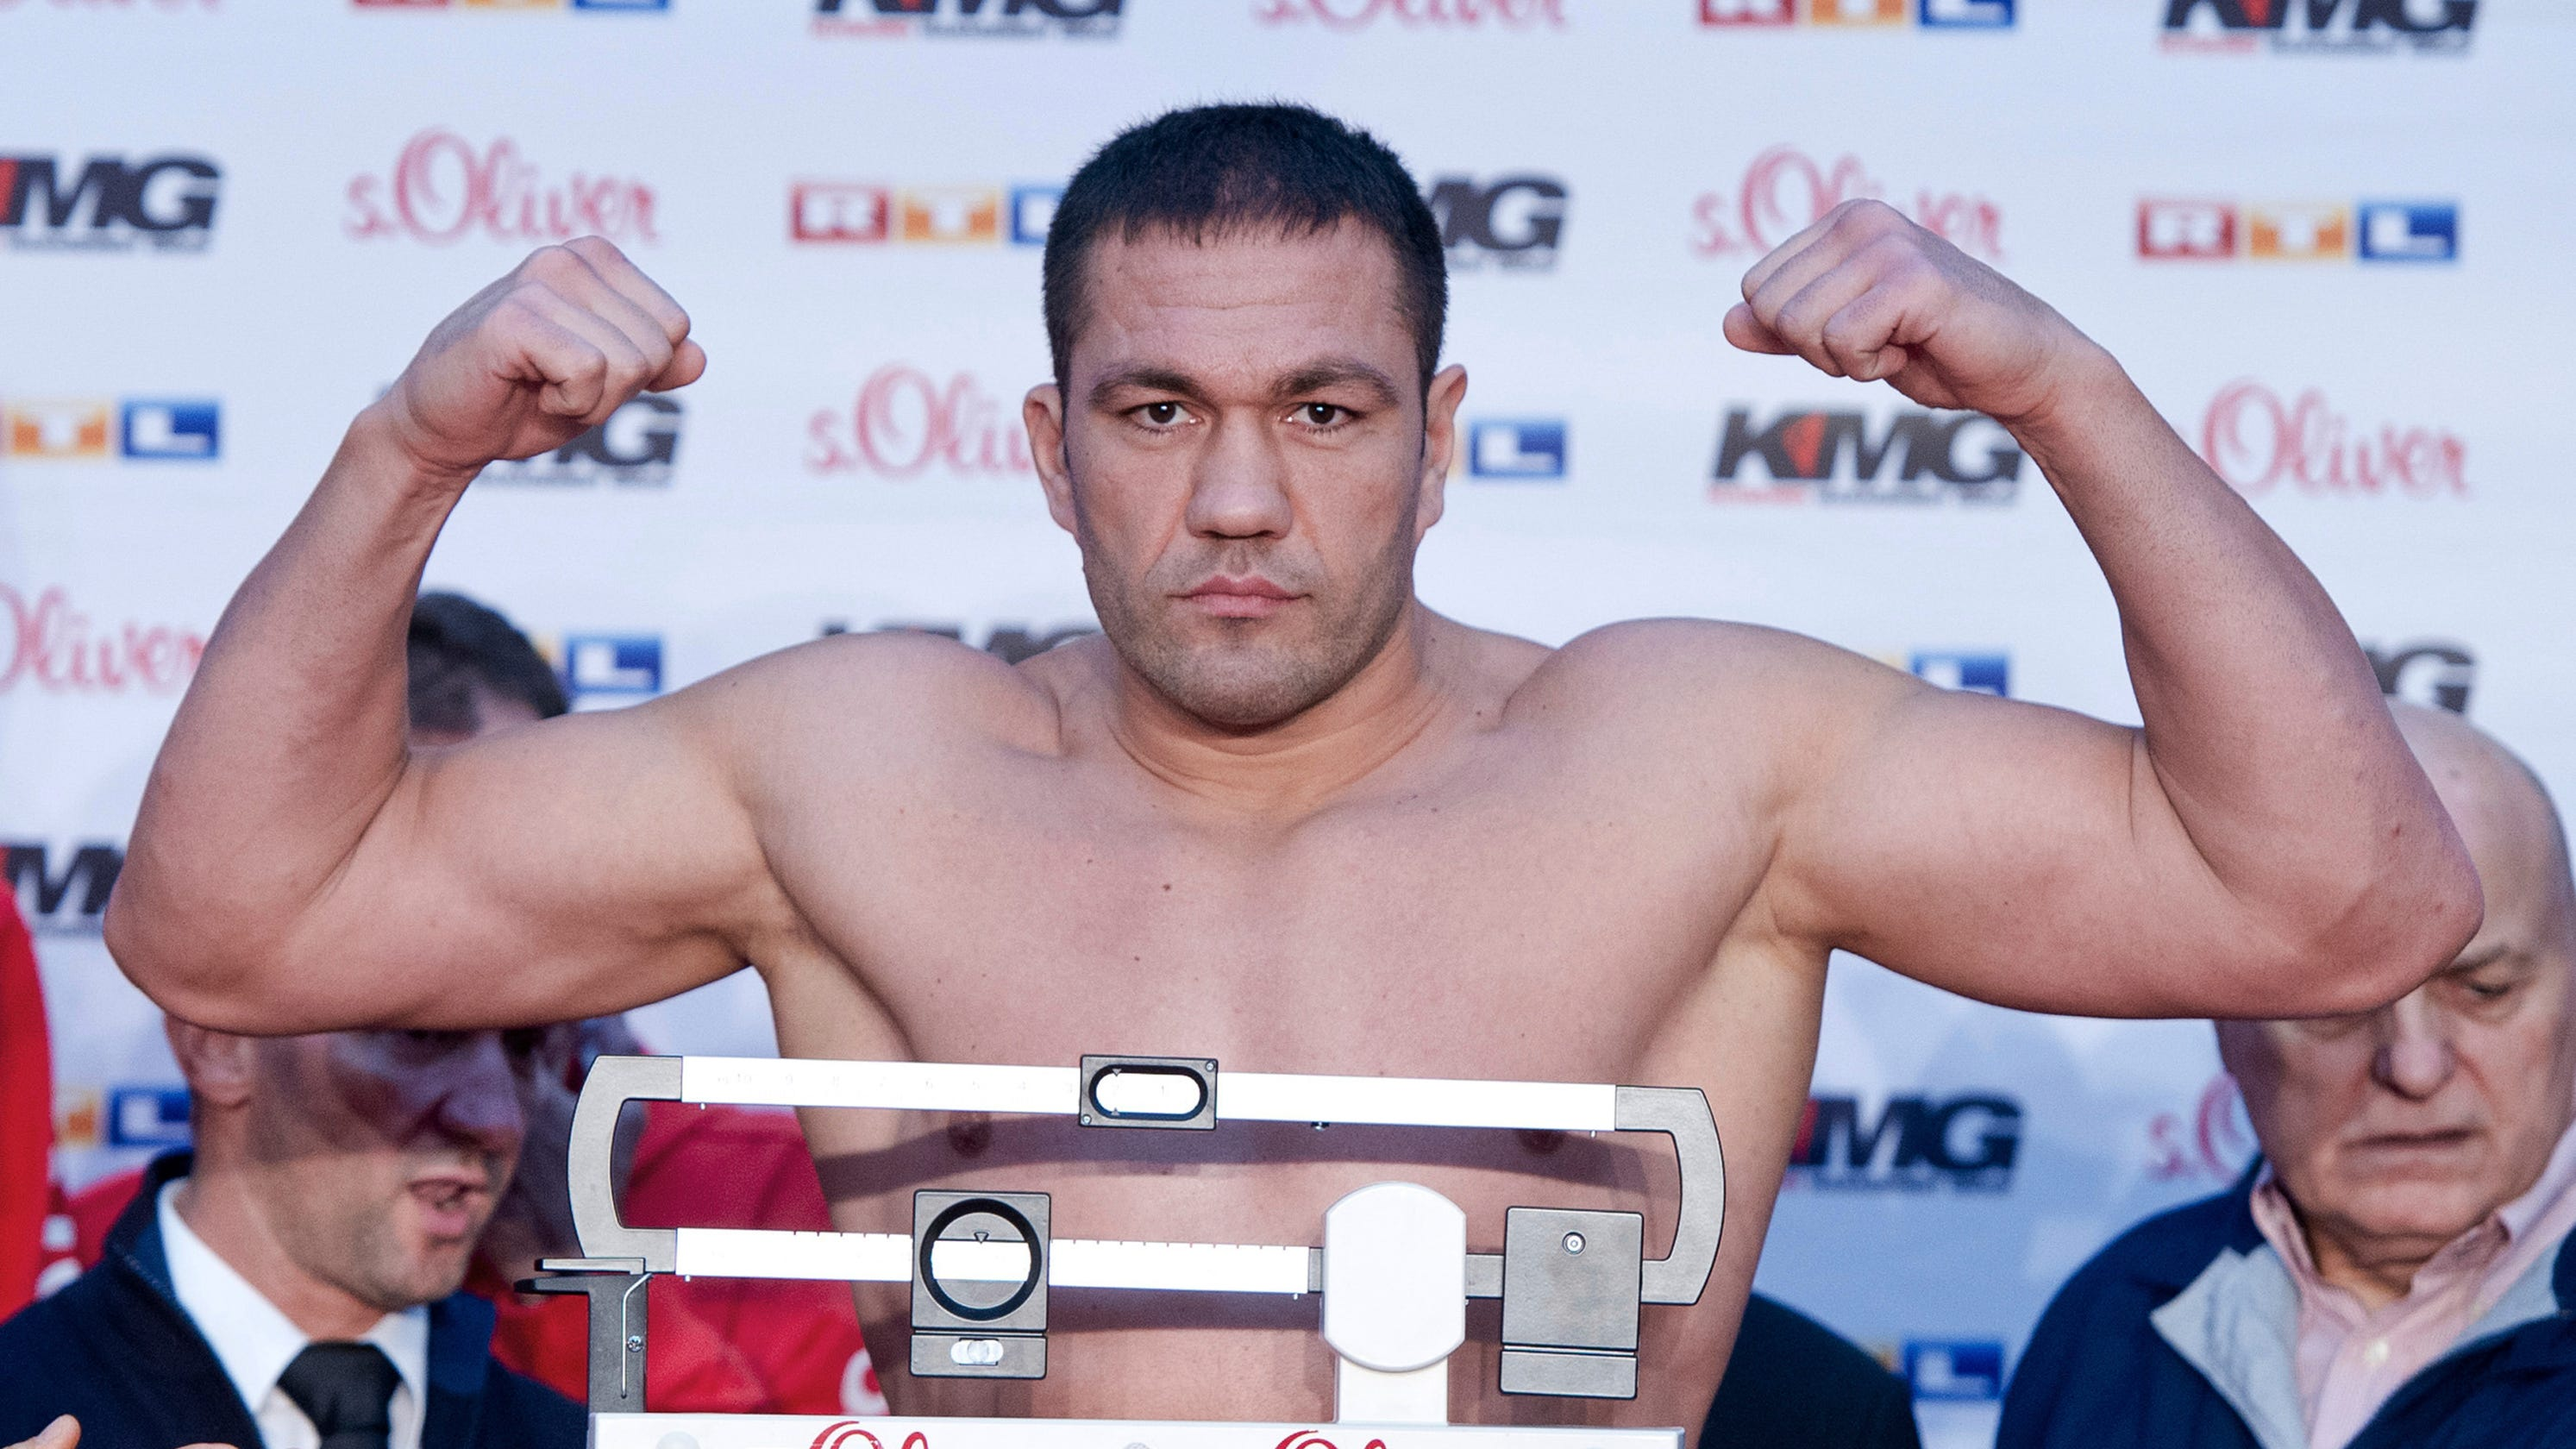 Suspension lifted on boxer who kissed reporter without consent